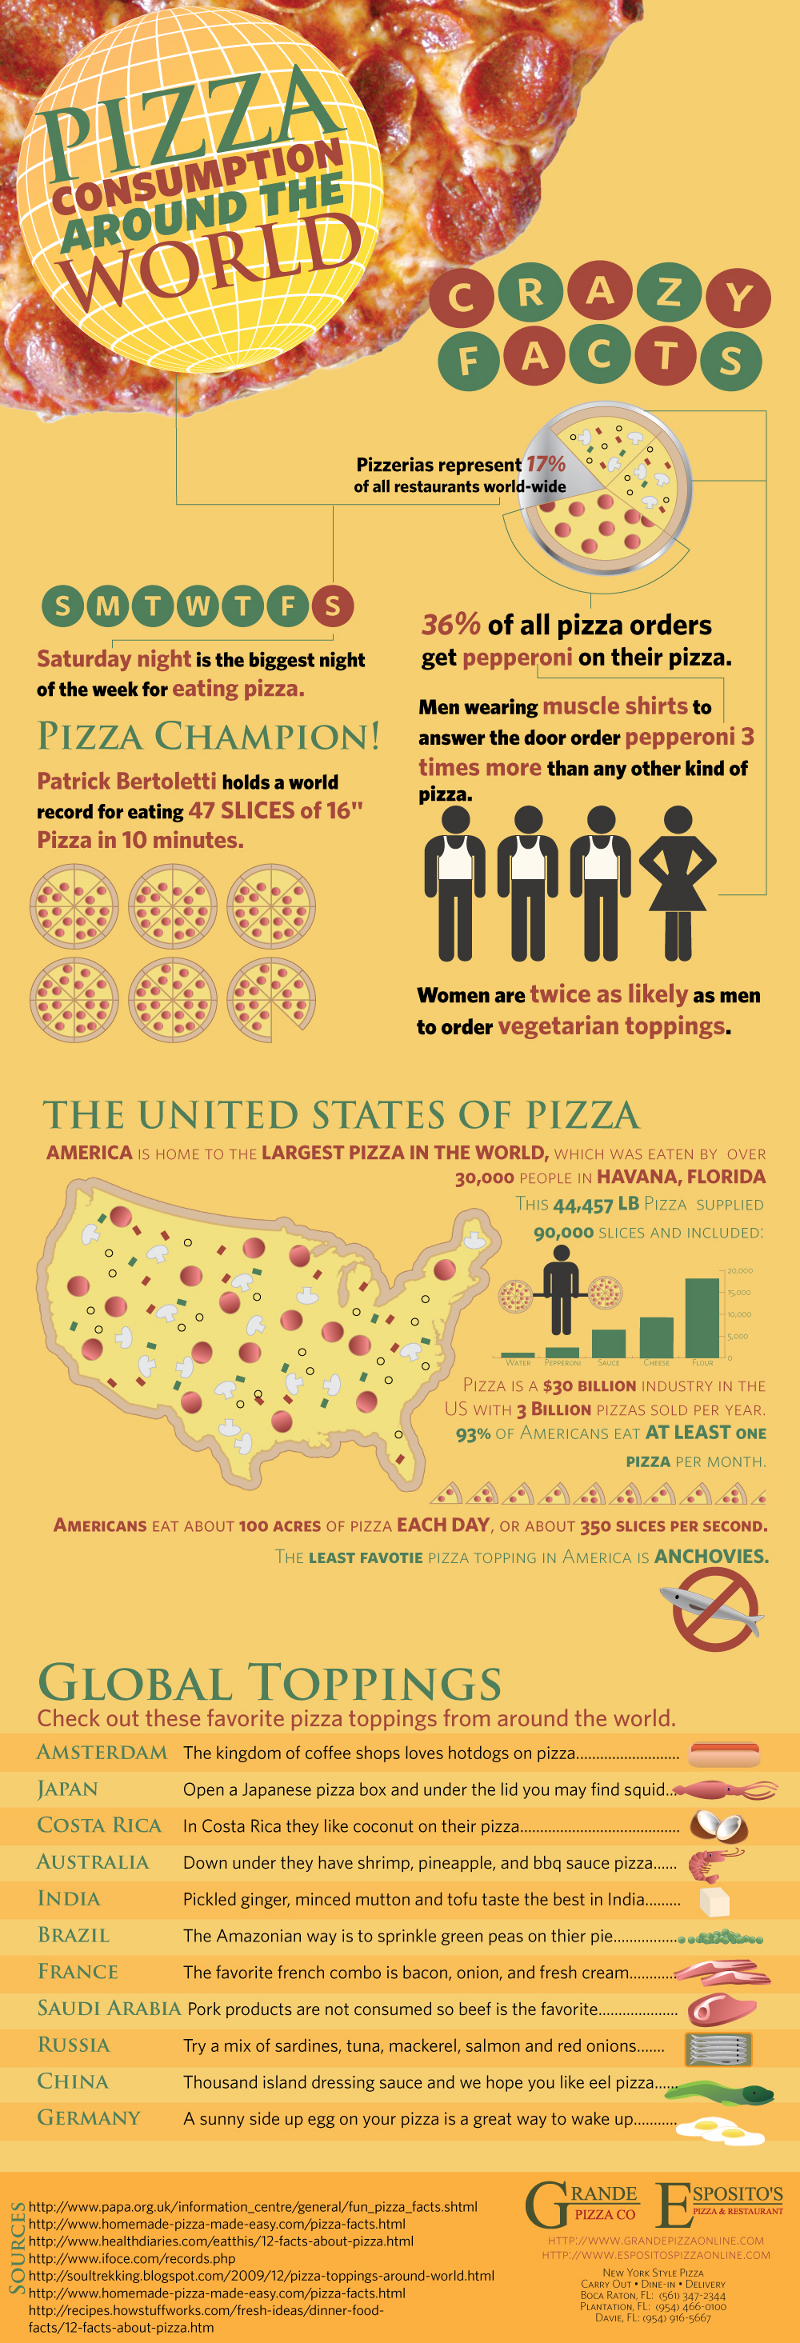 World Pizza Consumption Statistics